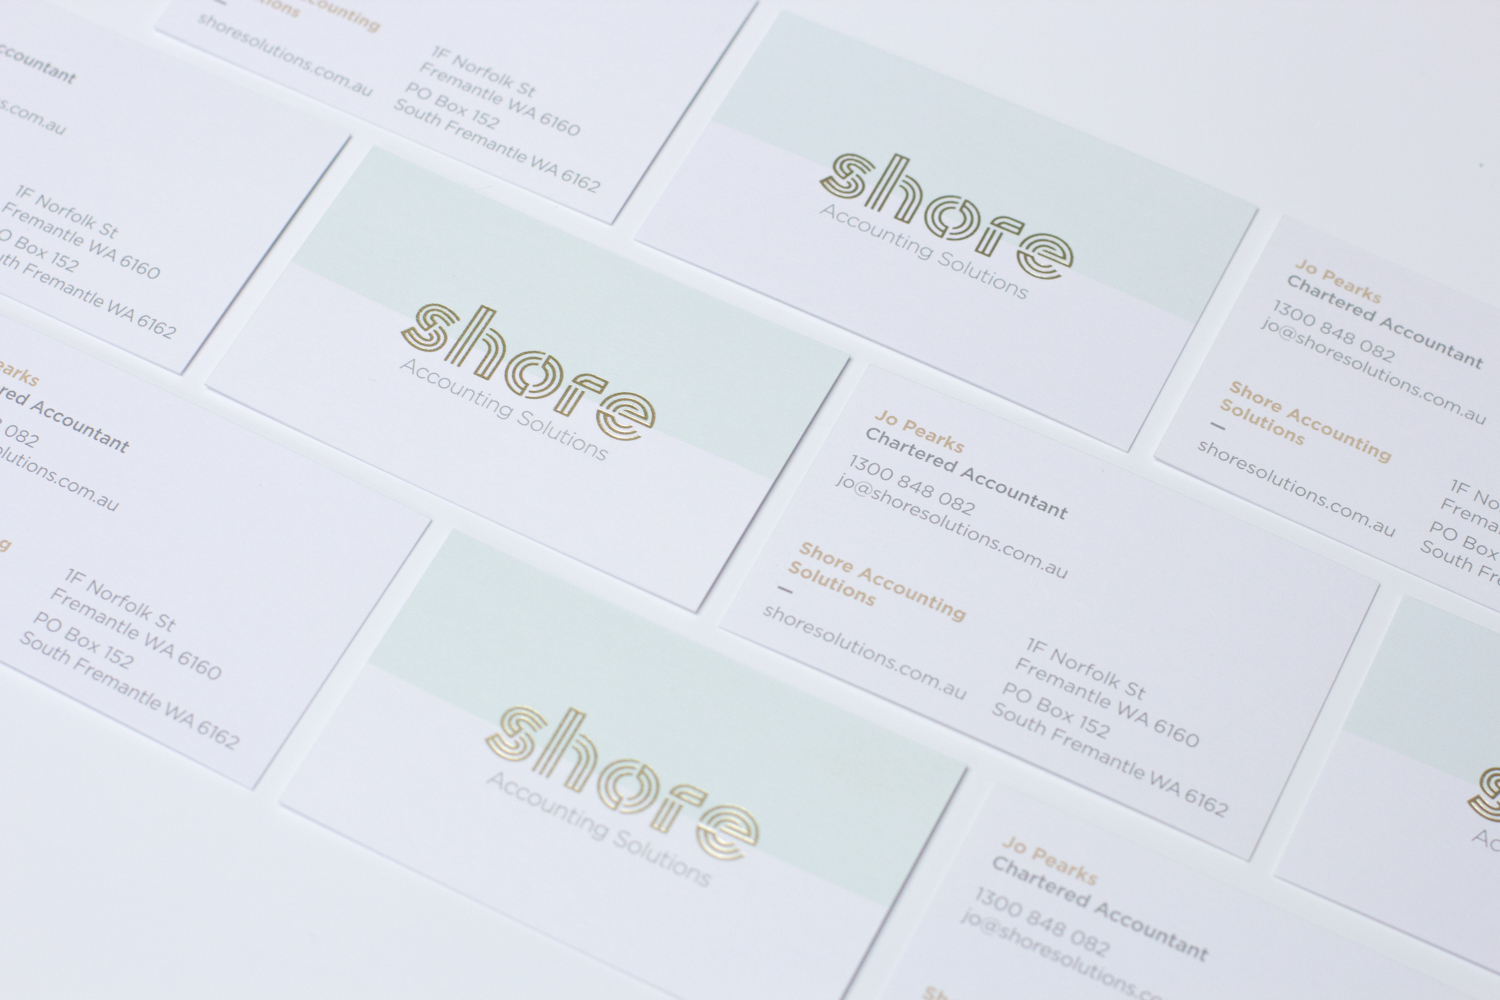 Shore Solutions Business Card